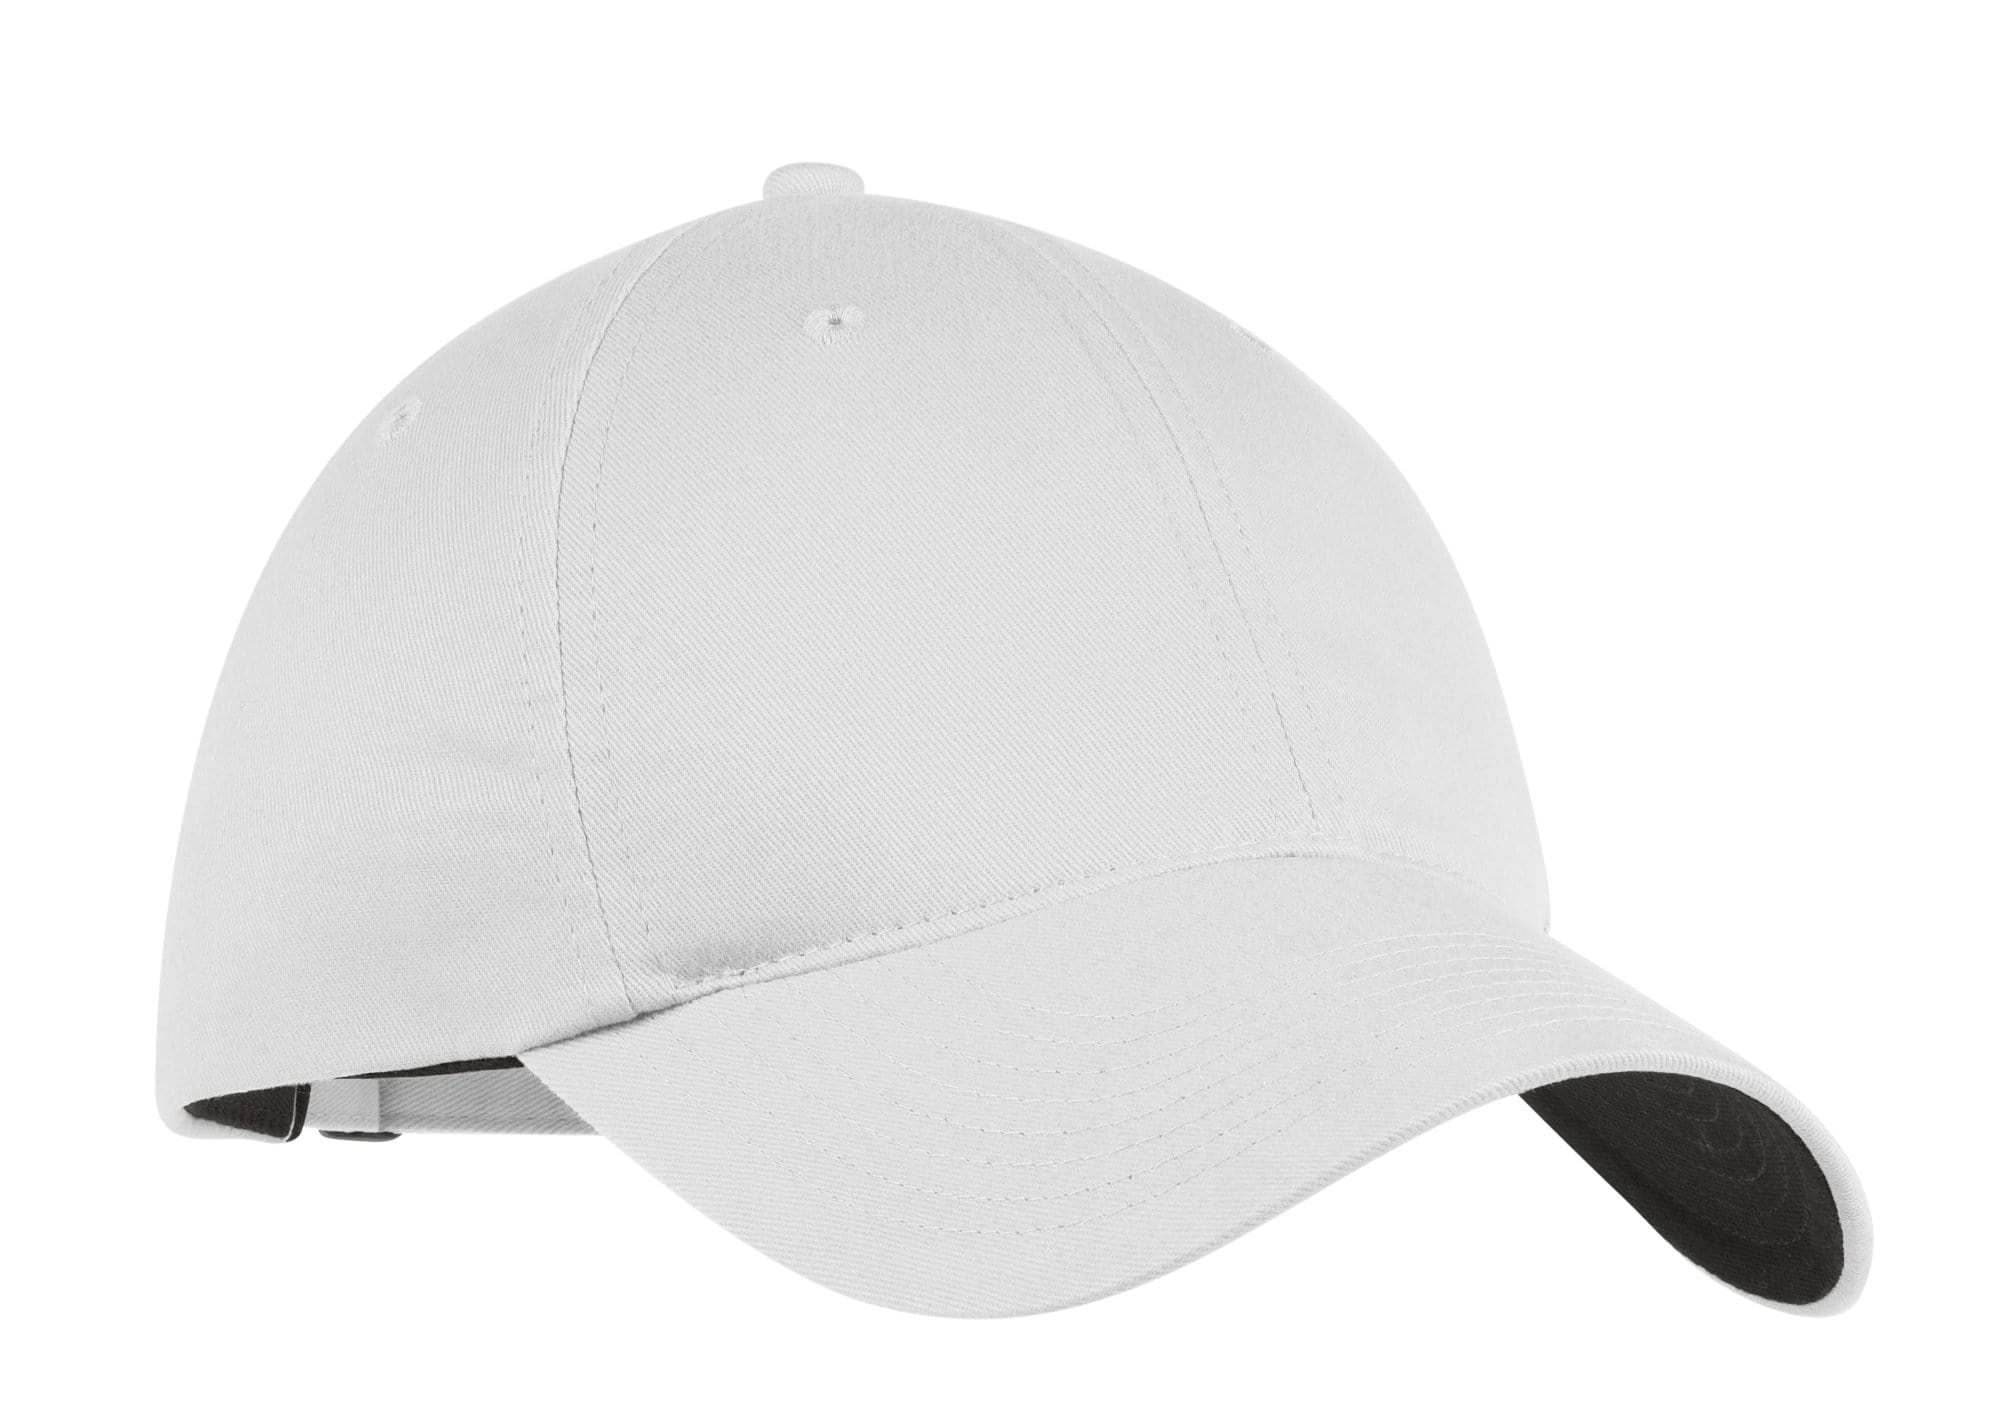 Nike Headwear ONE SIZE / WHITE Nike - Unstructured Twill Cap